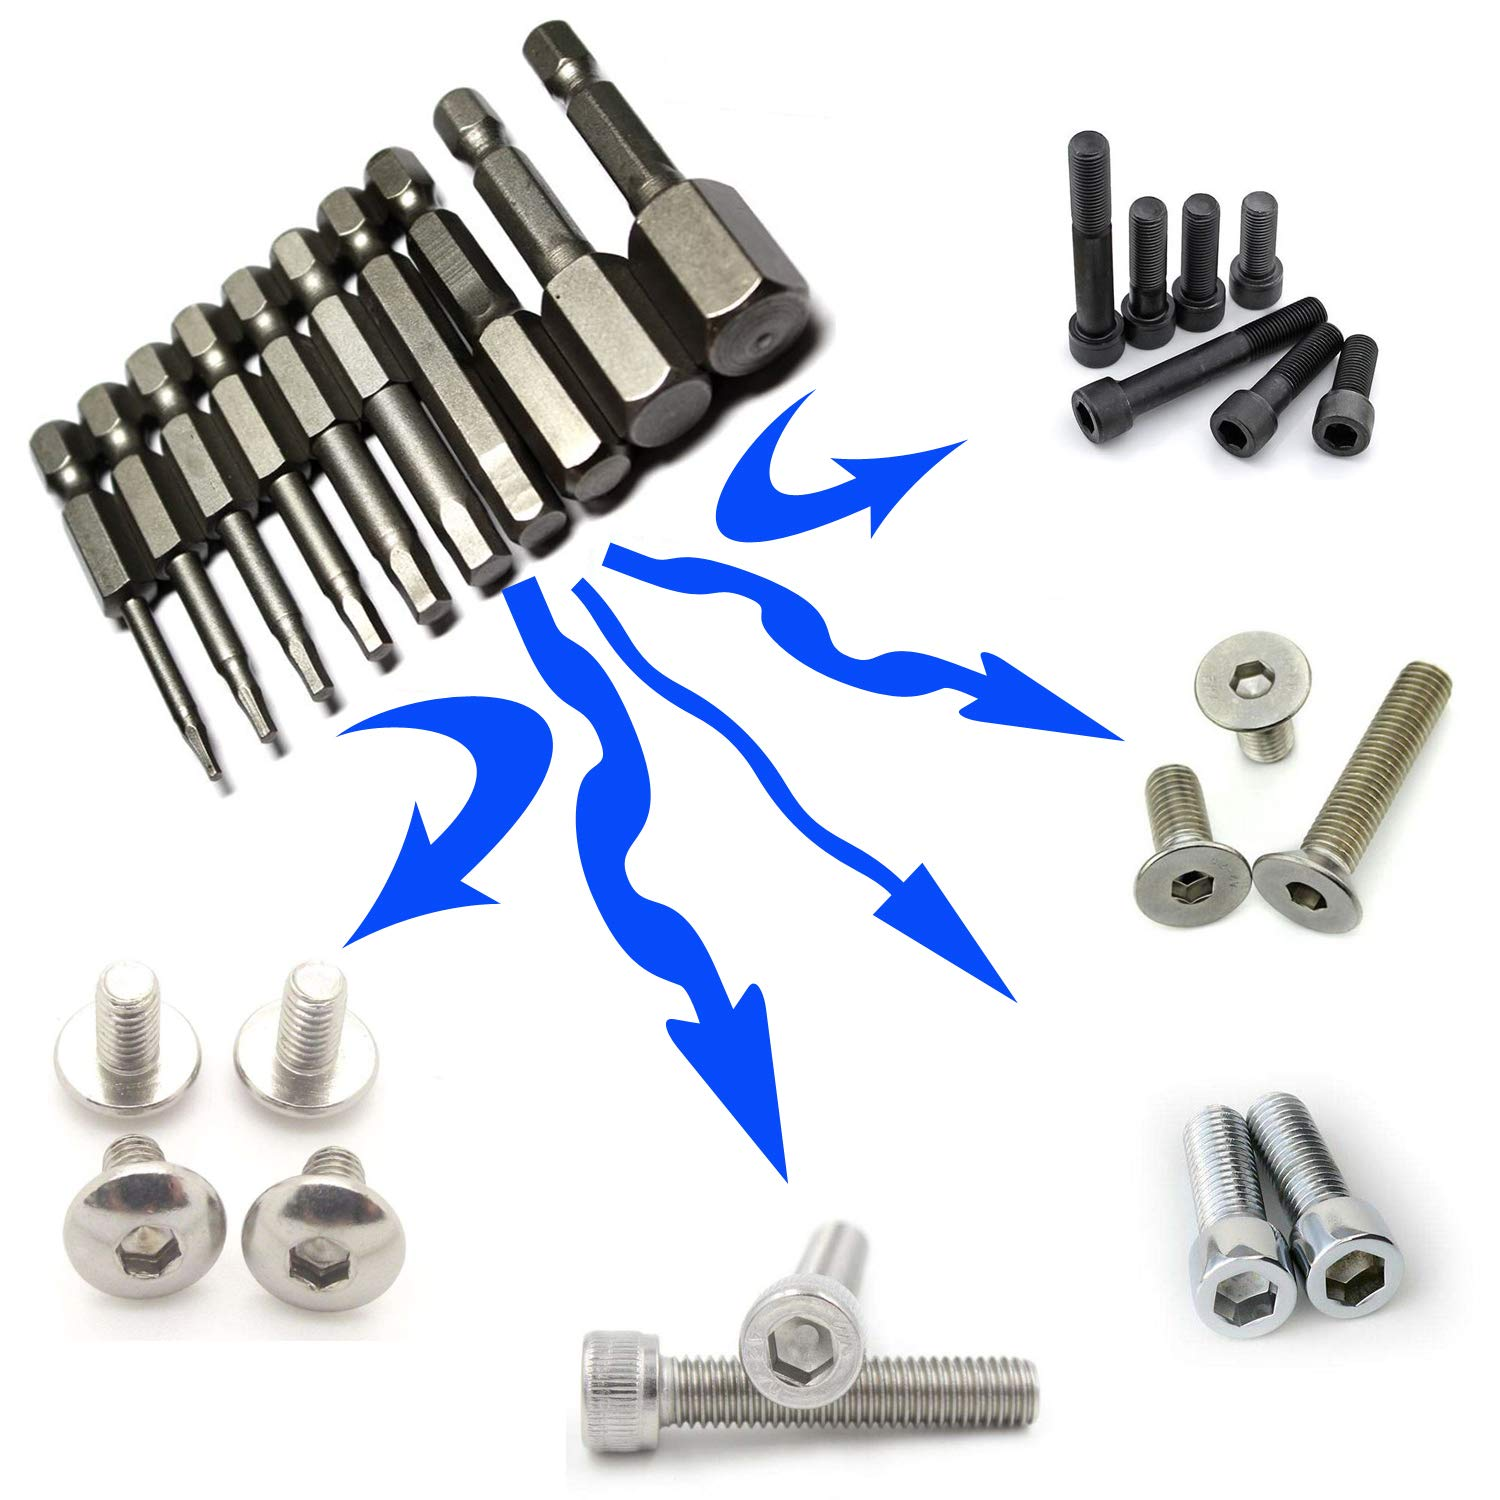 Neepanda 10 Pack Hex Magnetic Head Allen Wrench Drill Bits 10 Sizes 1//4 Inch Quick Release Hex Shank Screwdriver Set - 2 Inch Long, Solid S2 Steel Alloy, 1.5//2//2.5//3//4//5//6//8//10//12 mm